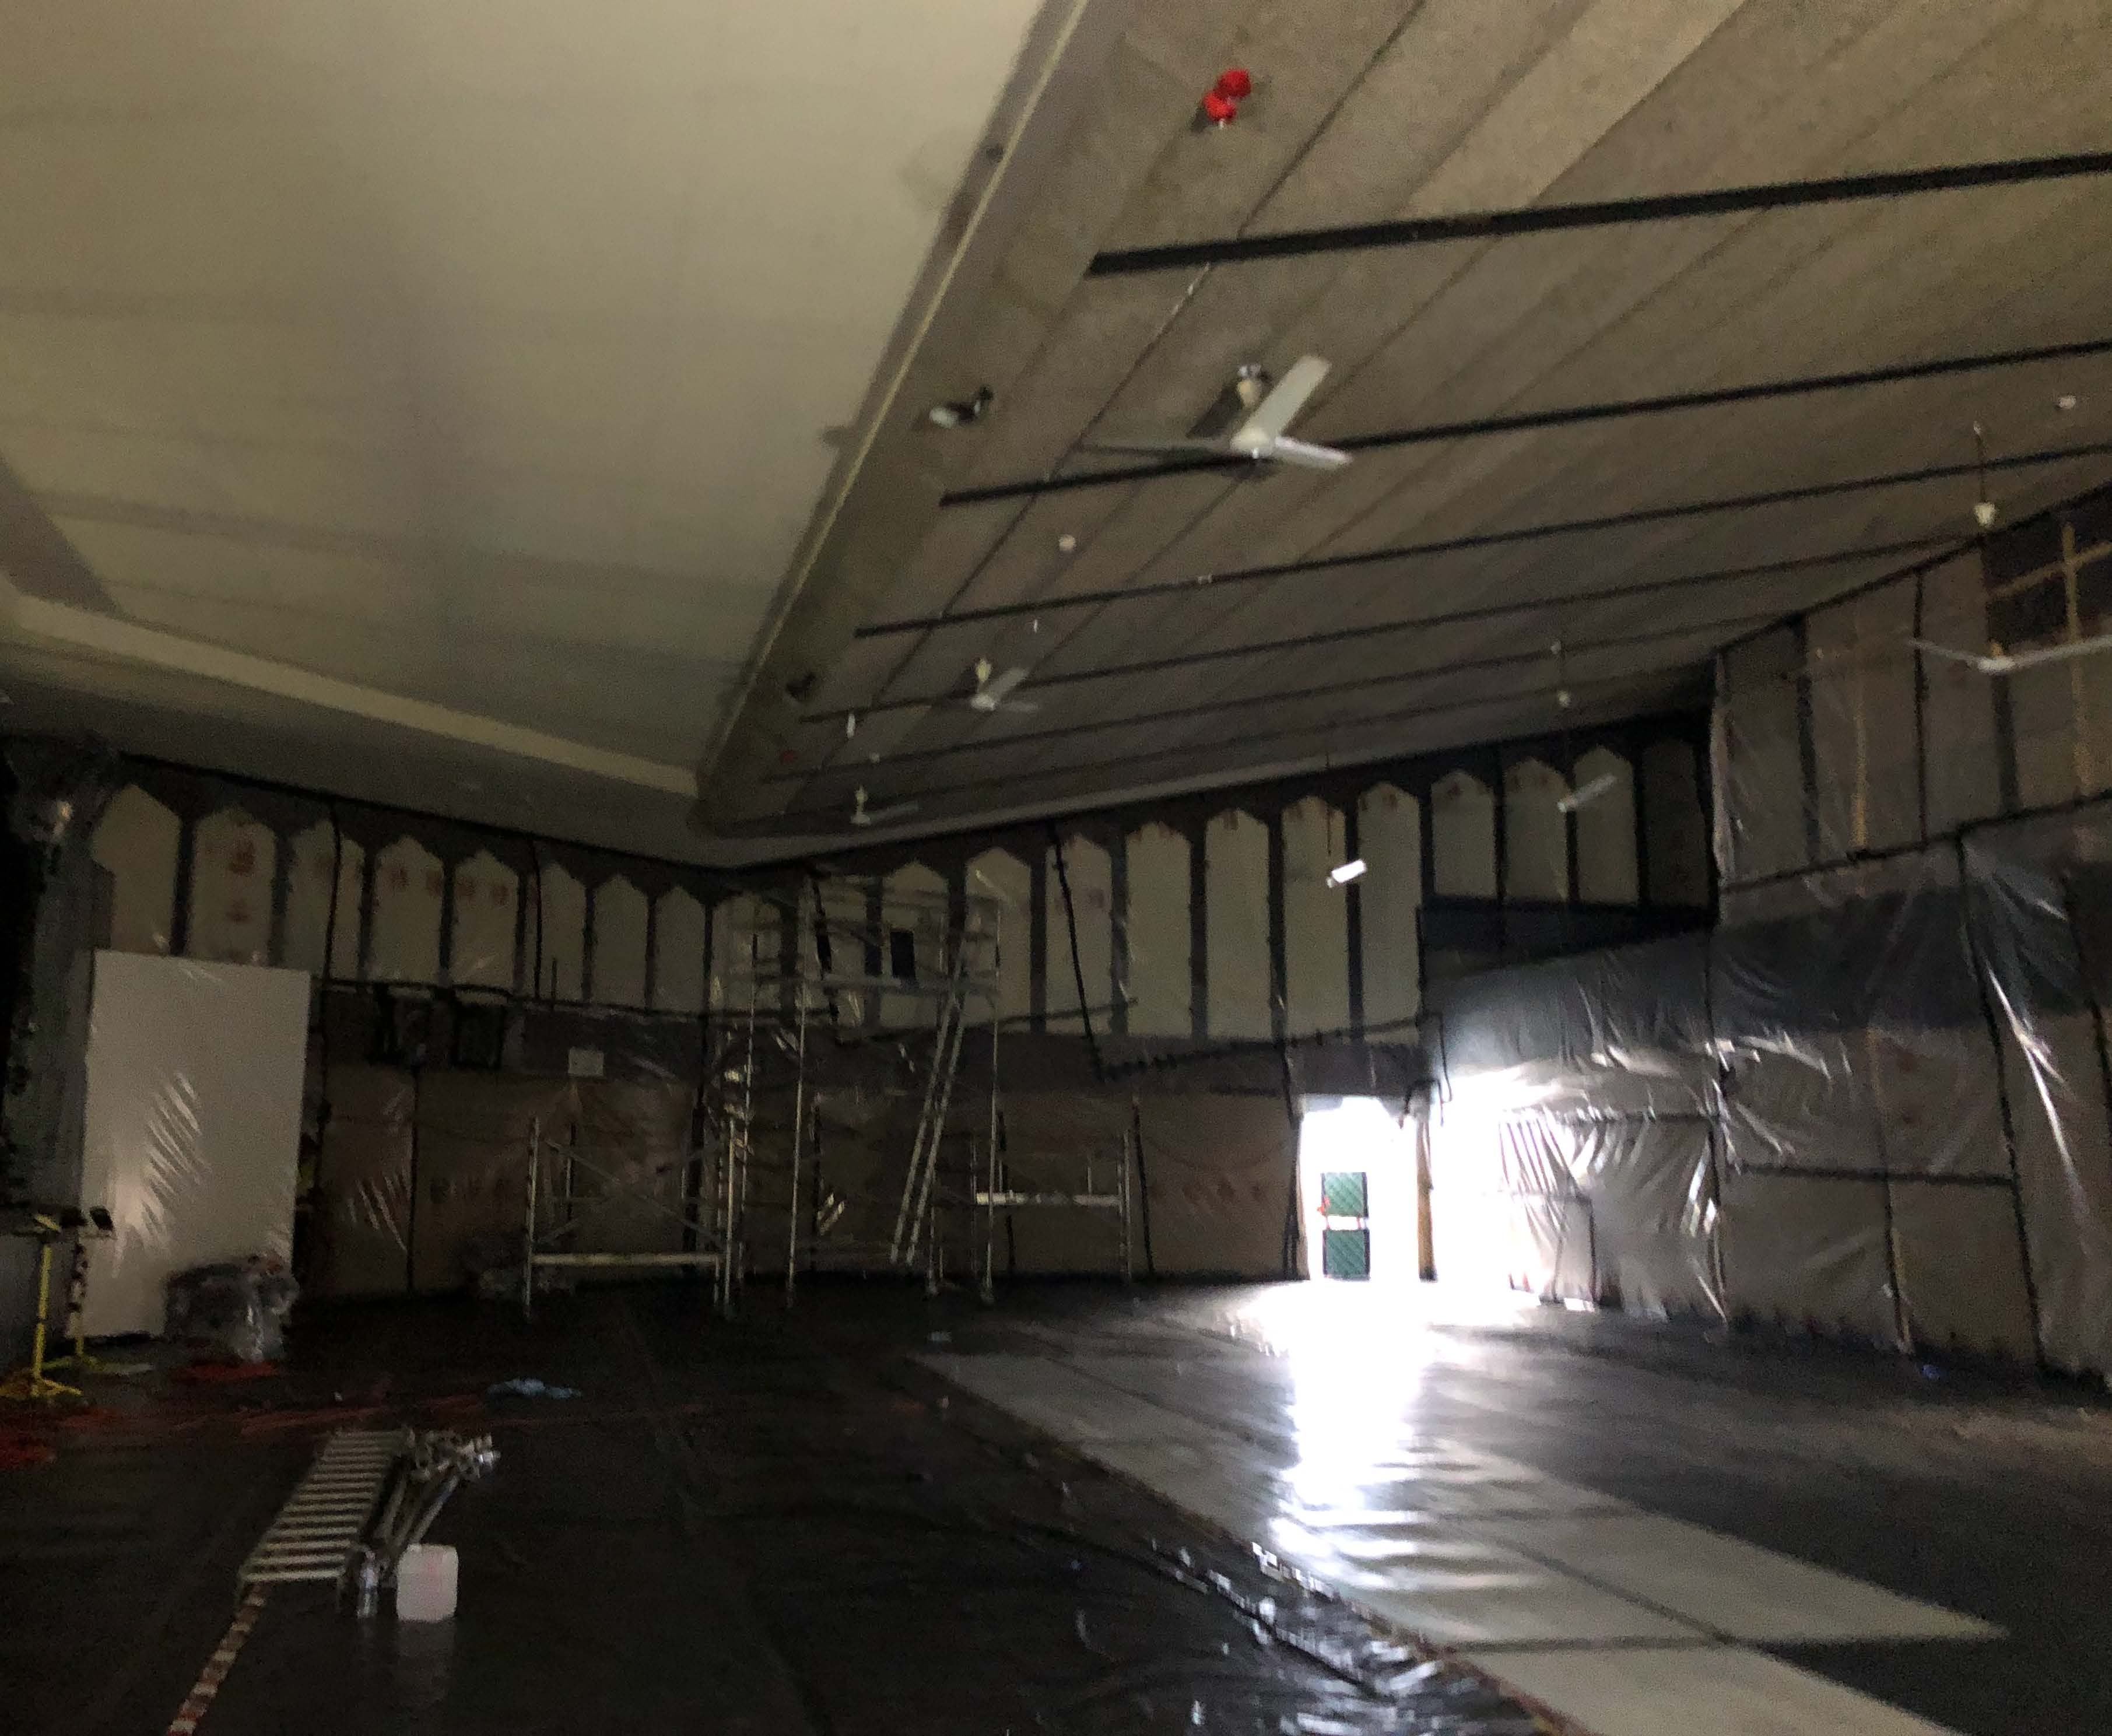 Asbestos removal works occurirng inside the auditorium